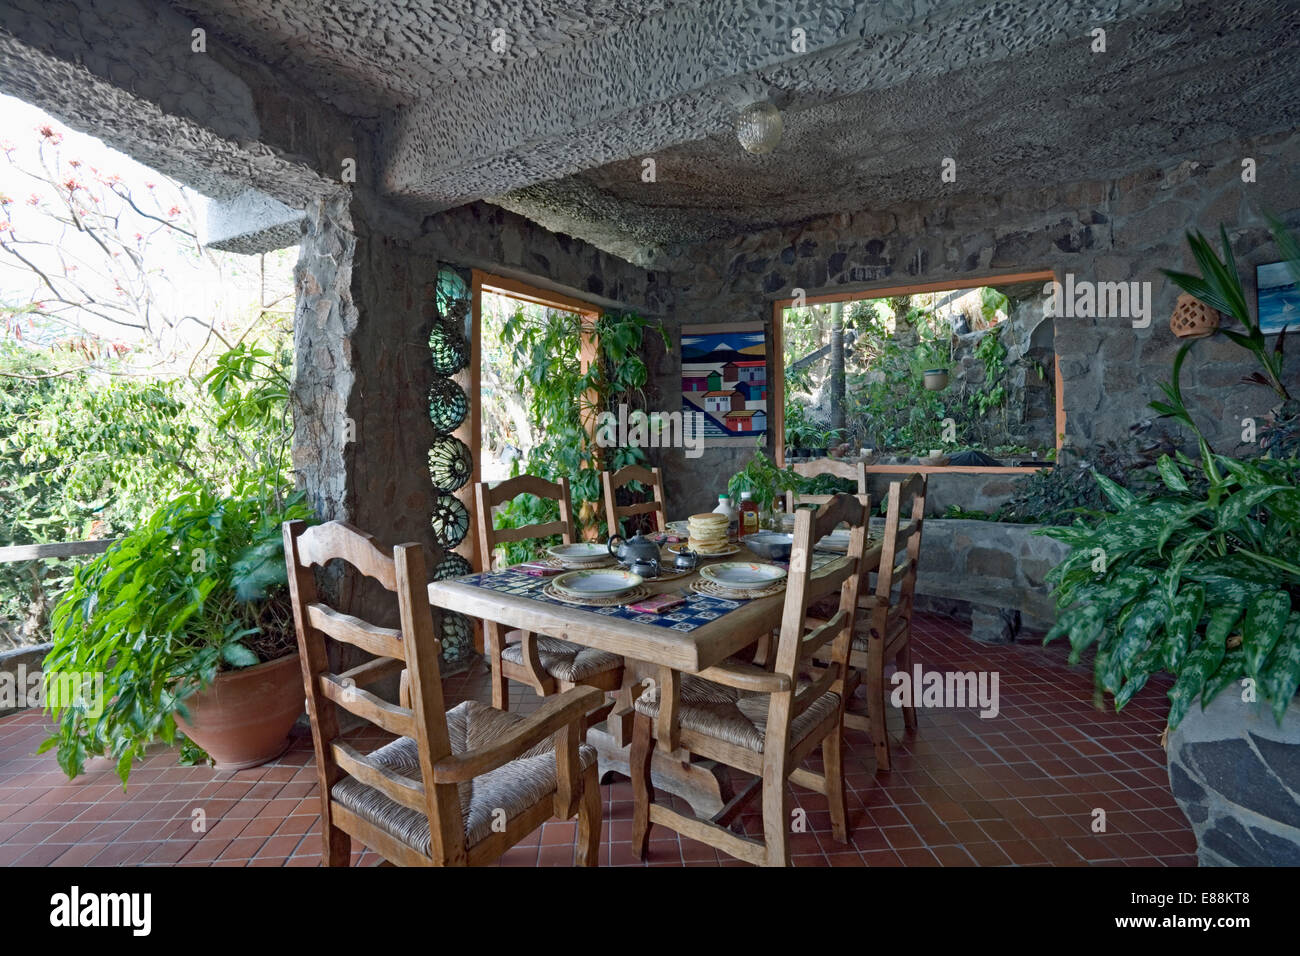 Rustic wooden table and chairs in dining area on veranda of house on stock photo royalty free - Veranda dining rooms ...